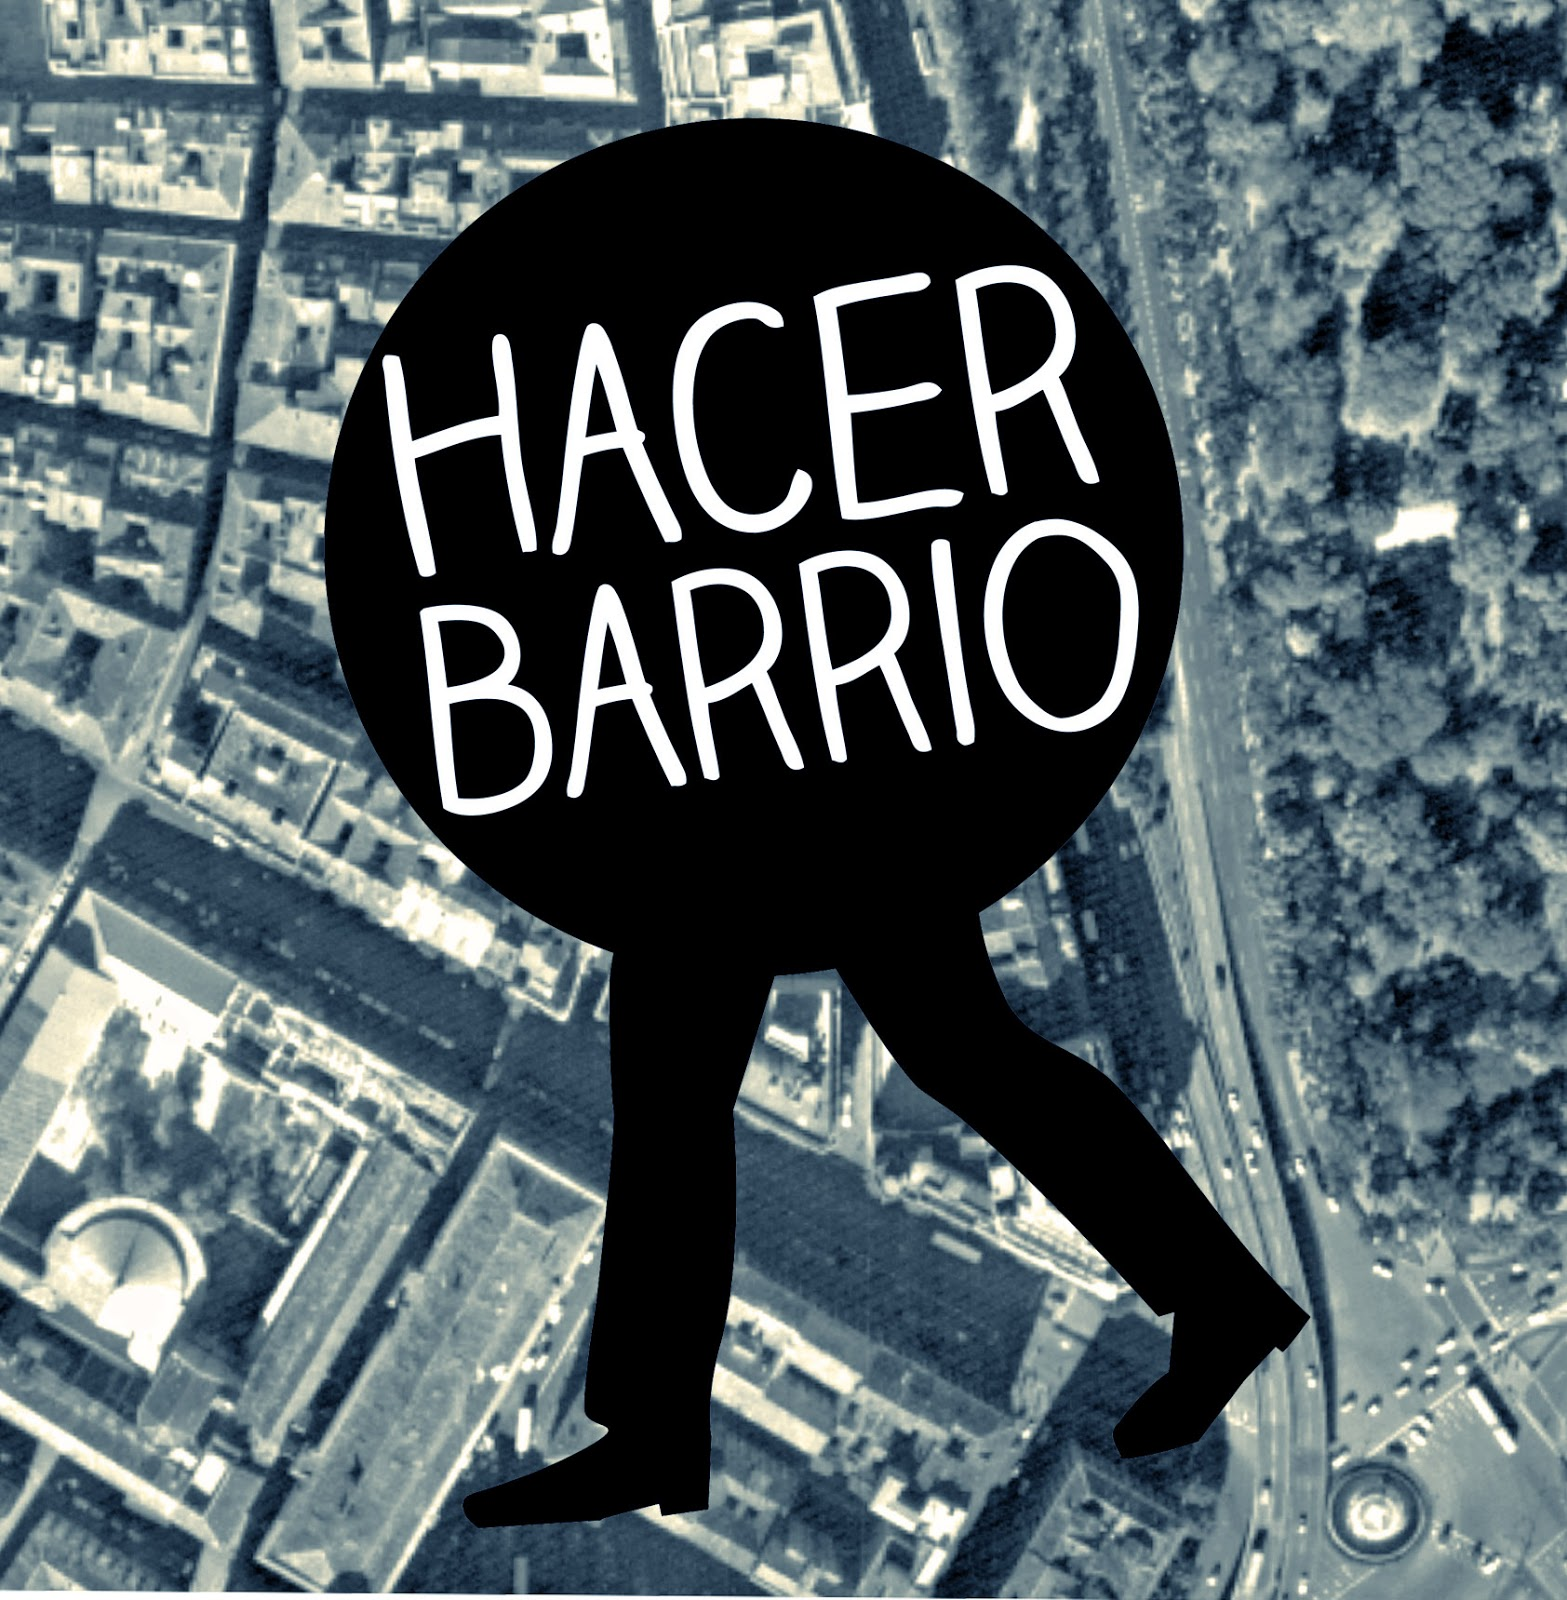 hacer barrio